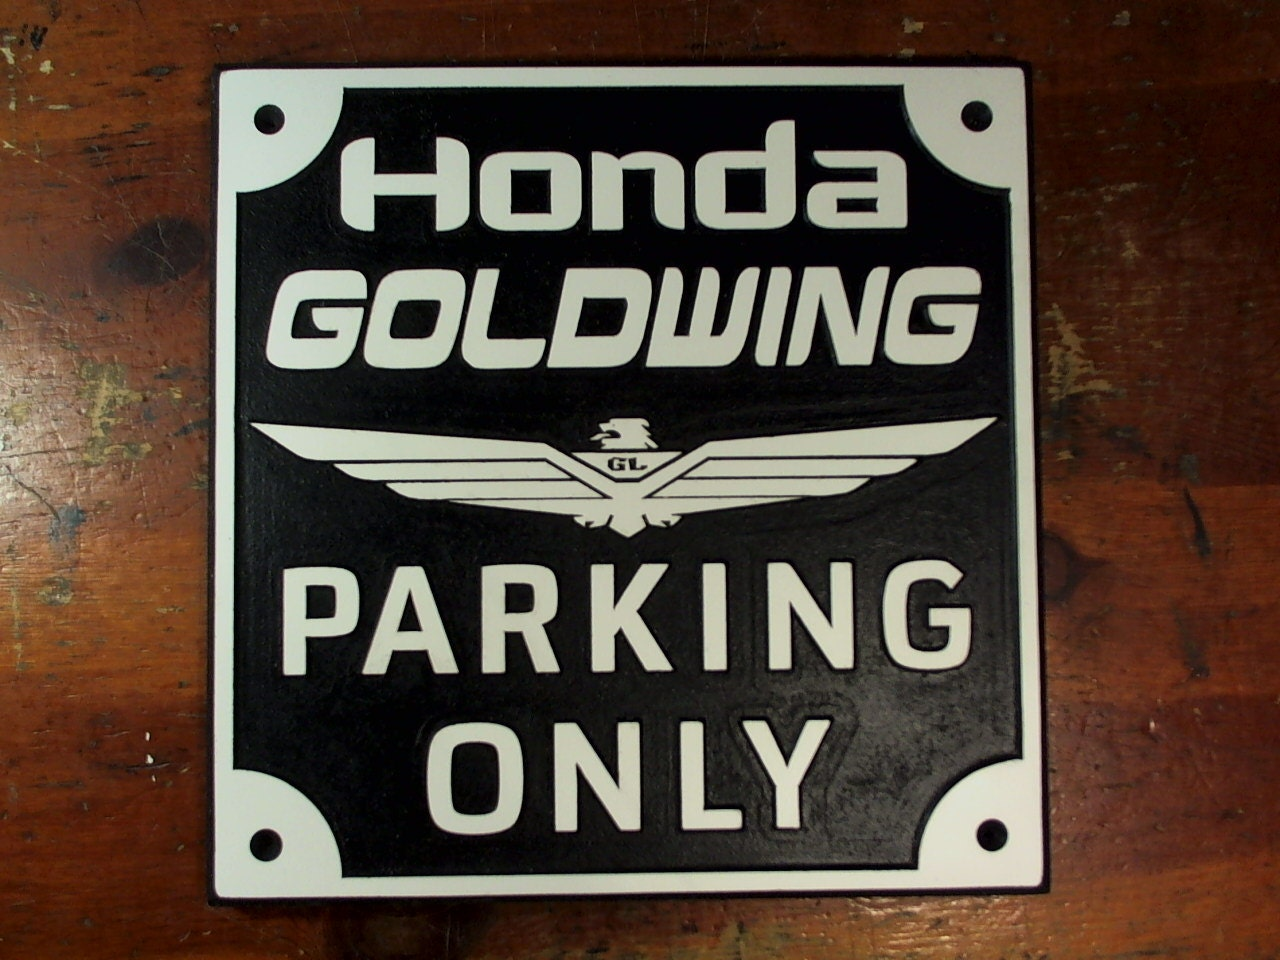 Engraved Man Cave Signs : Honda goldwing parking only engraved sign man cave garage